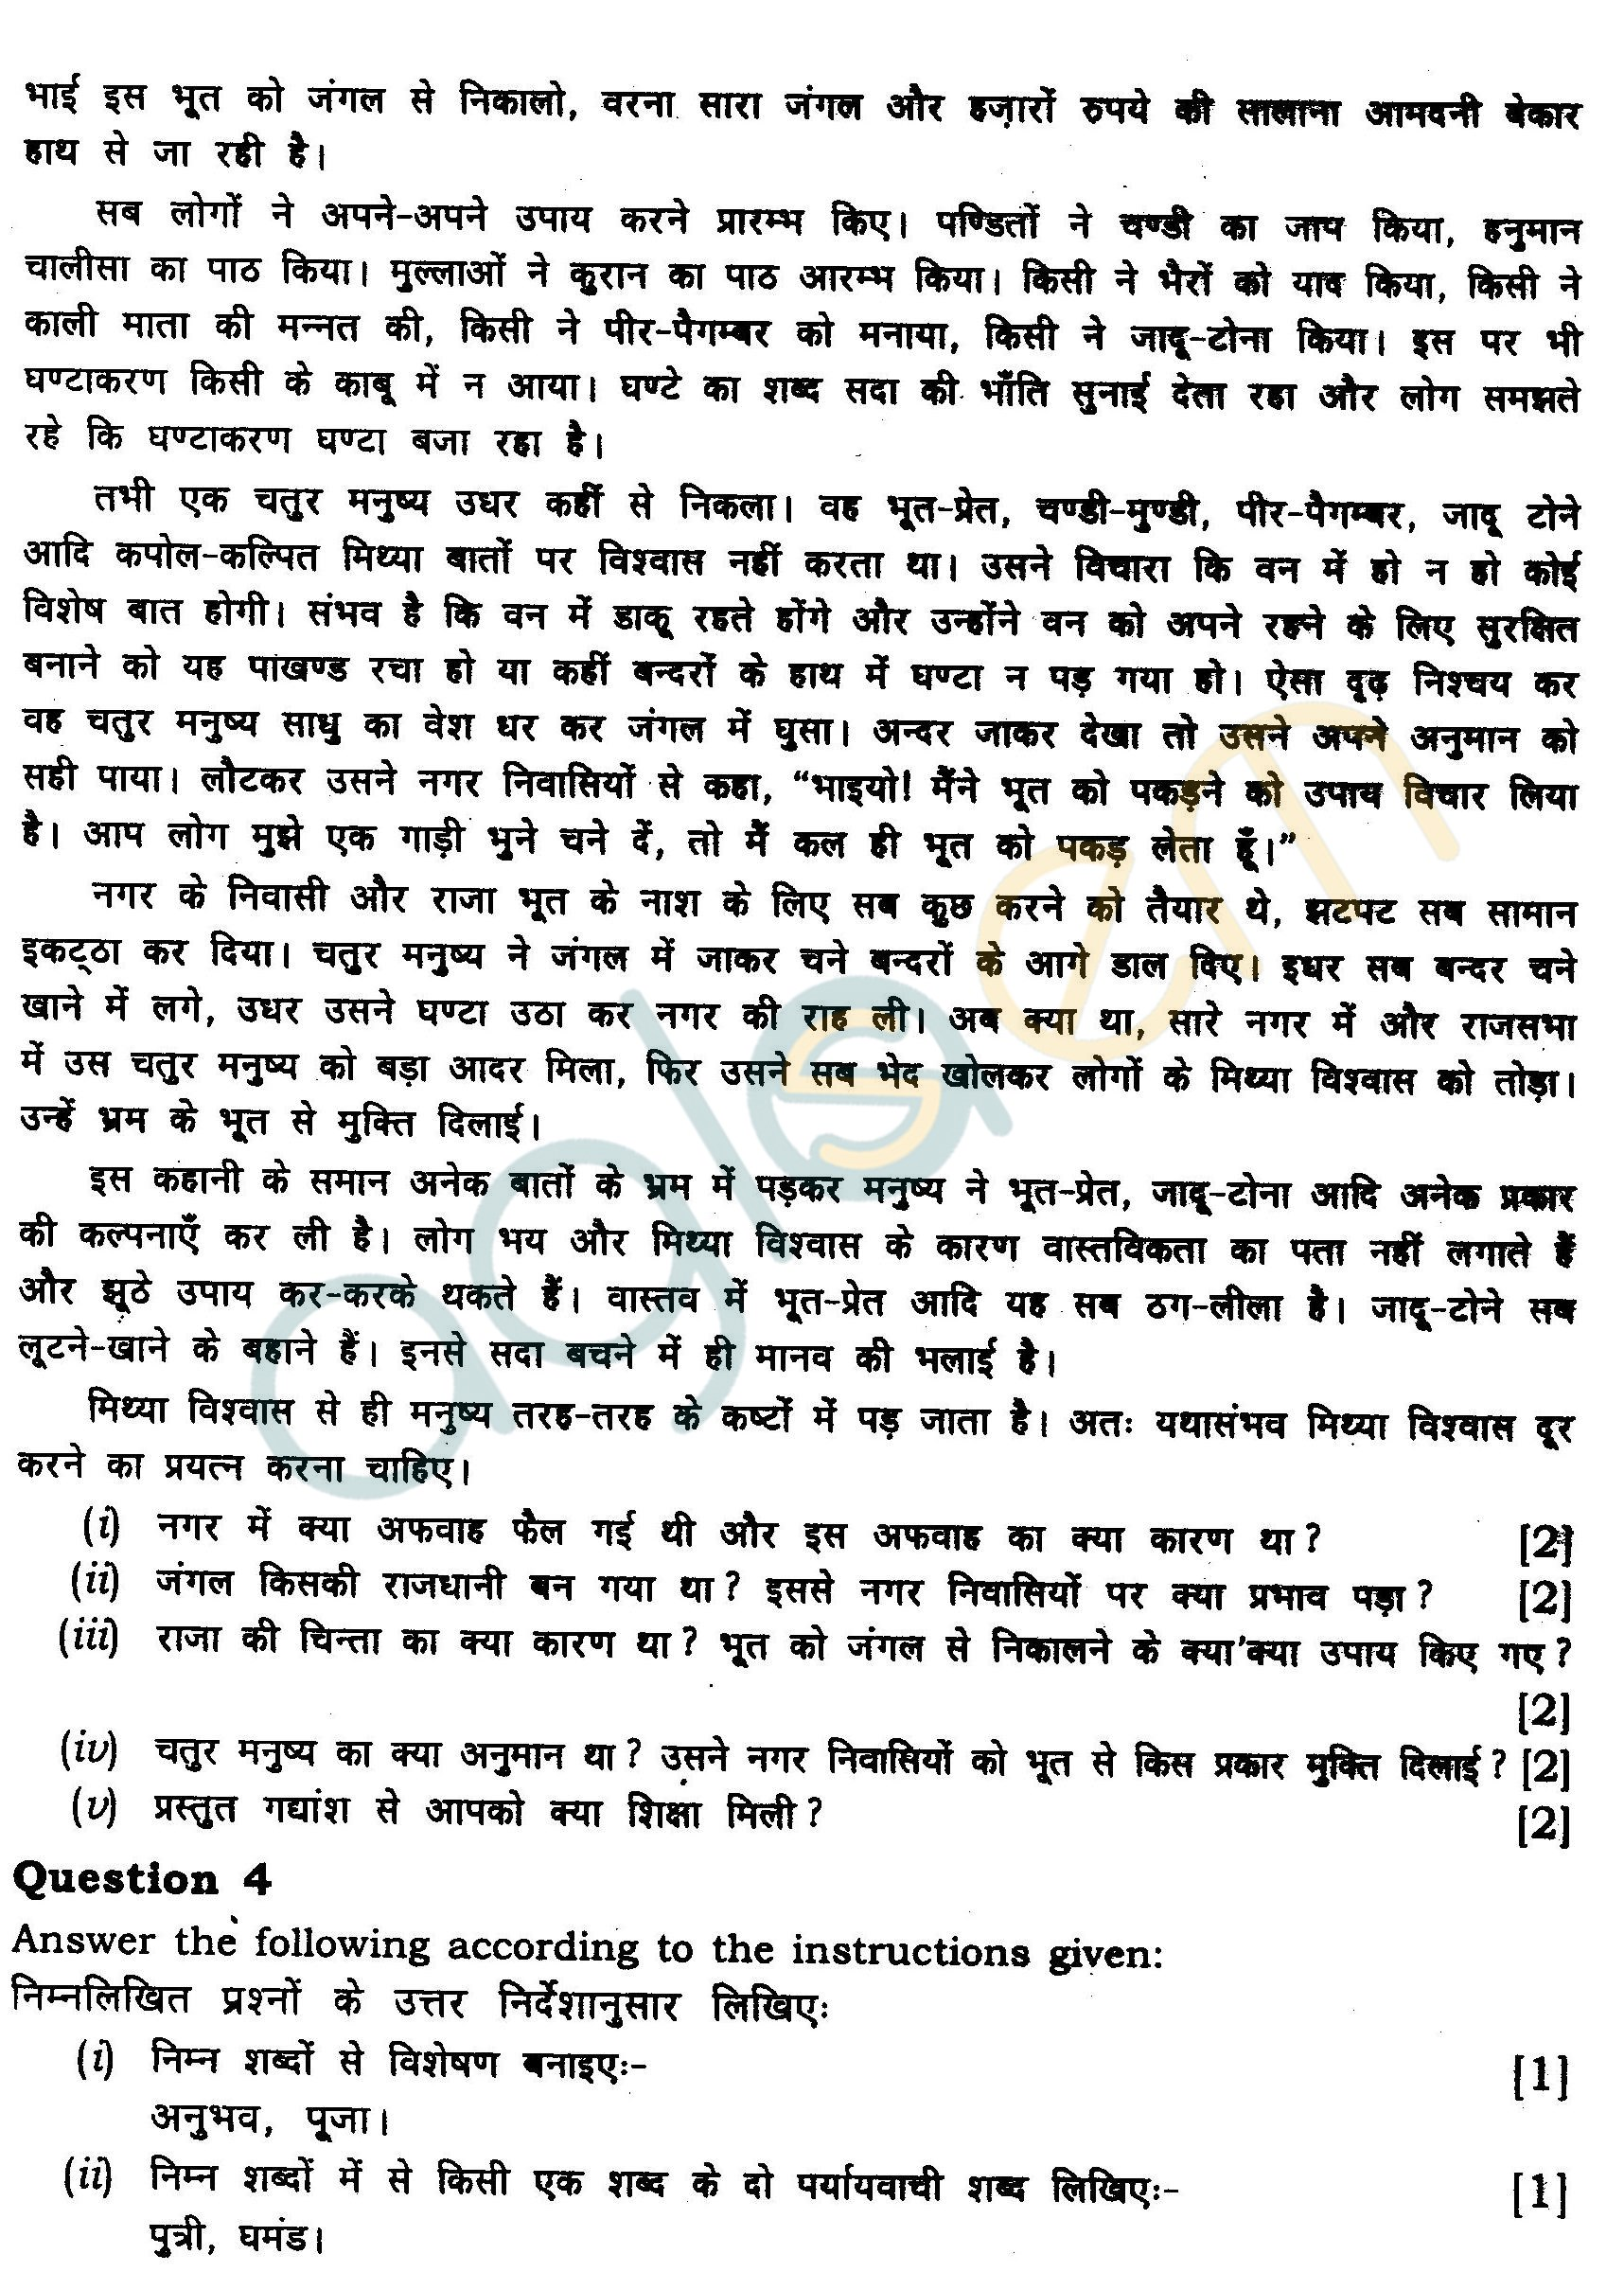 ICSE Class X Exam Question Papers 2012 Hindi